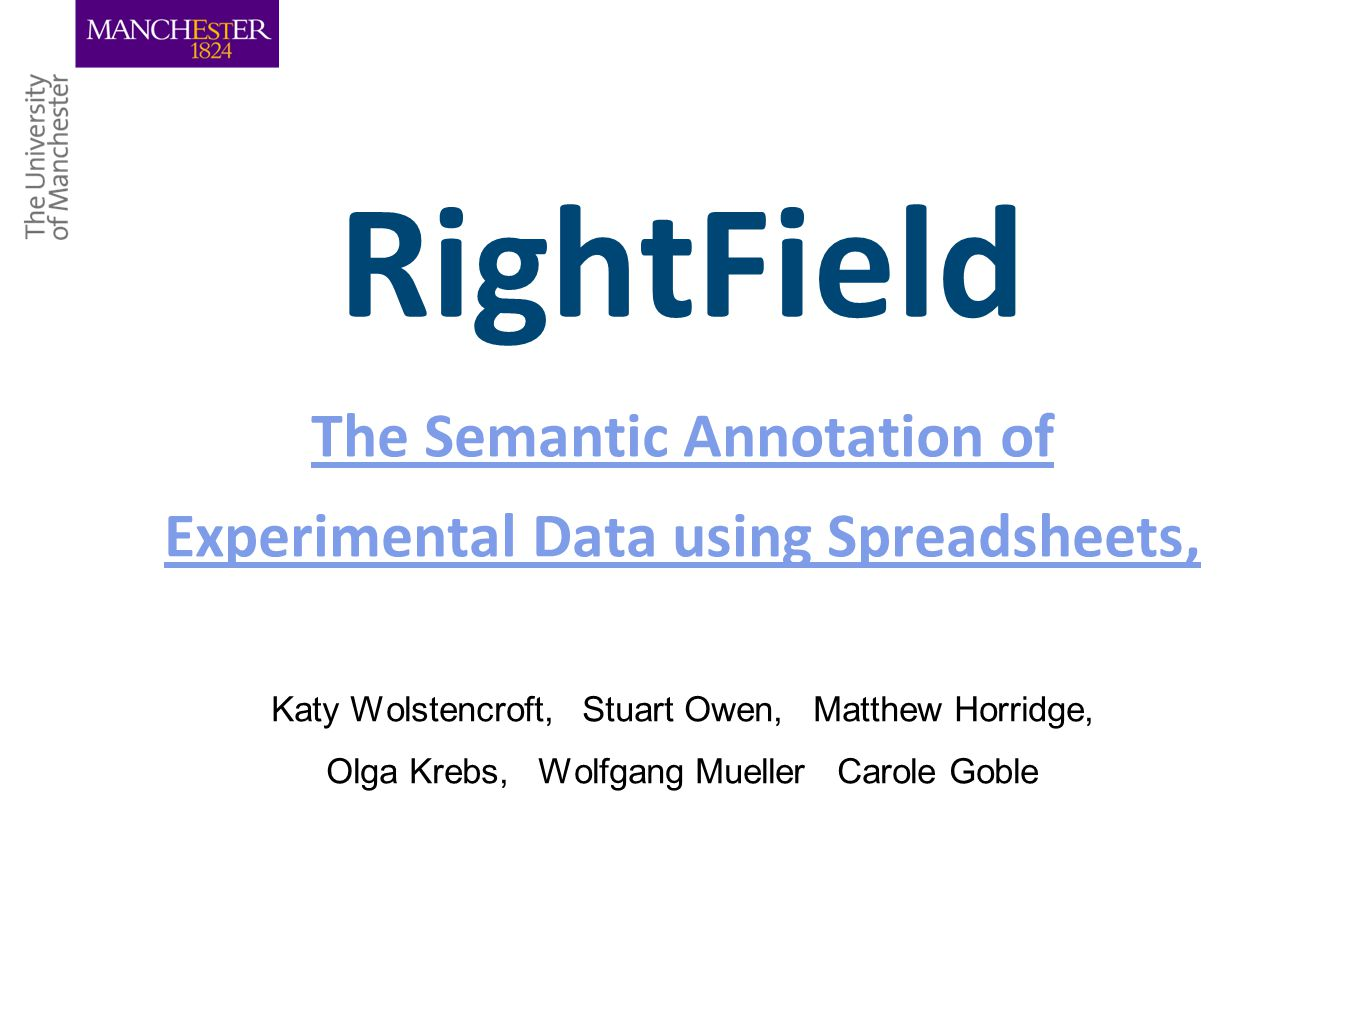 RightField The Semantic Annotation of Experimental Data using Spreadsheets, The Semantic Annotation of Experimental Data using Spreadsheets, Katy Wolstencroft, Stuart Owen, Matthew Horridge, Olga Krebs, Wolfgang Mueller Carole Goble